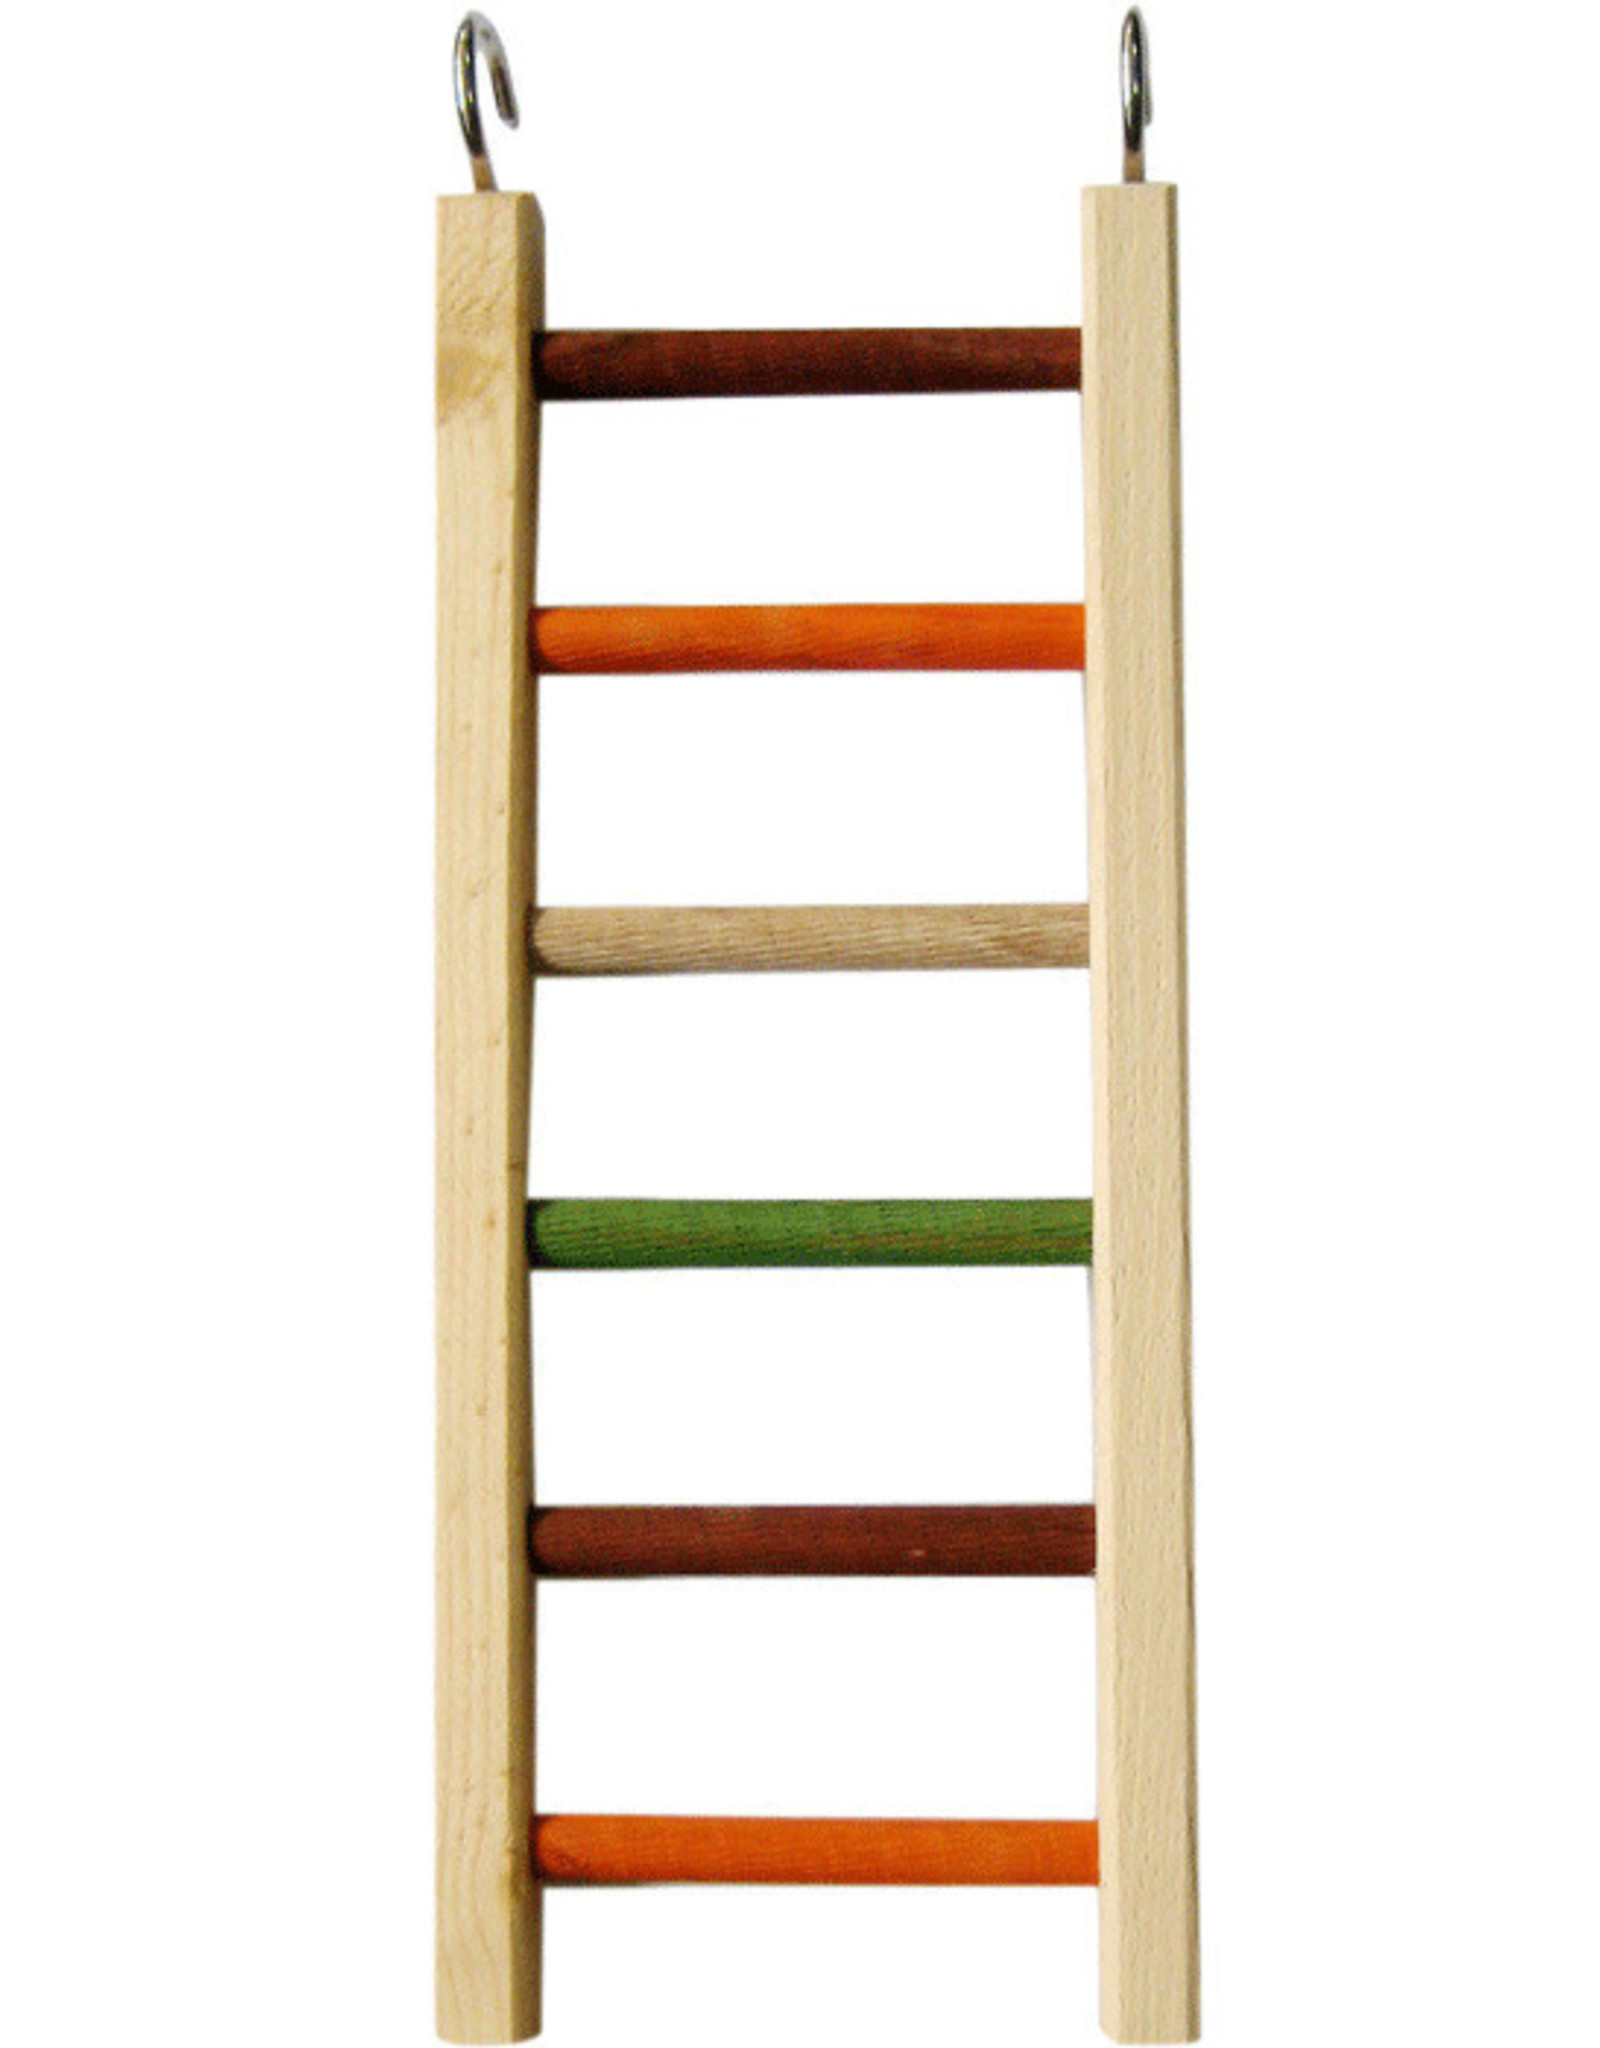 """A & E CAGE CO. Wooden Hanging Ladder, 14"""" x 5.25"""" - 1/2"""" Diameter"""